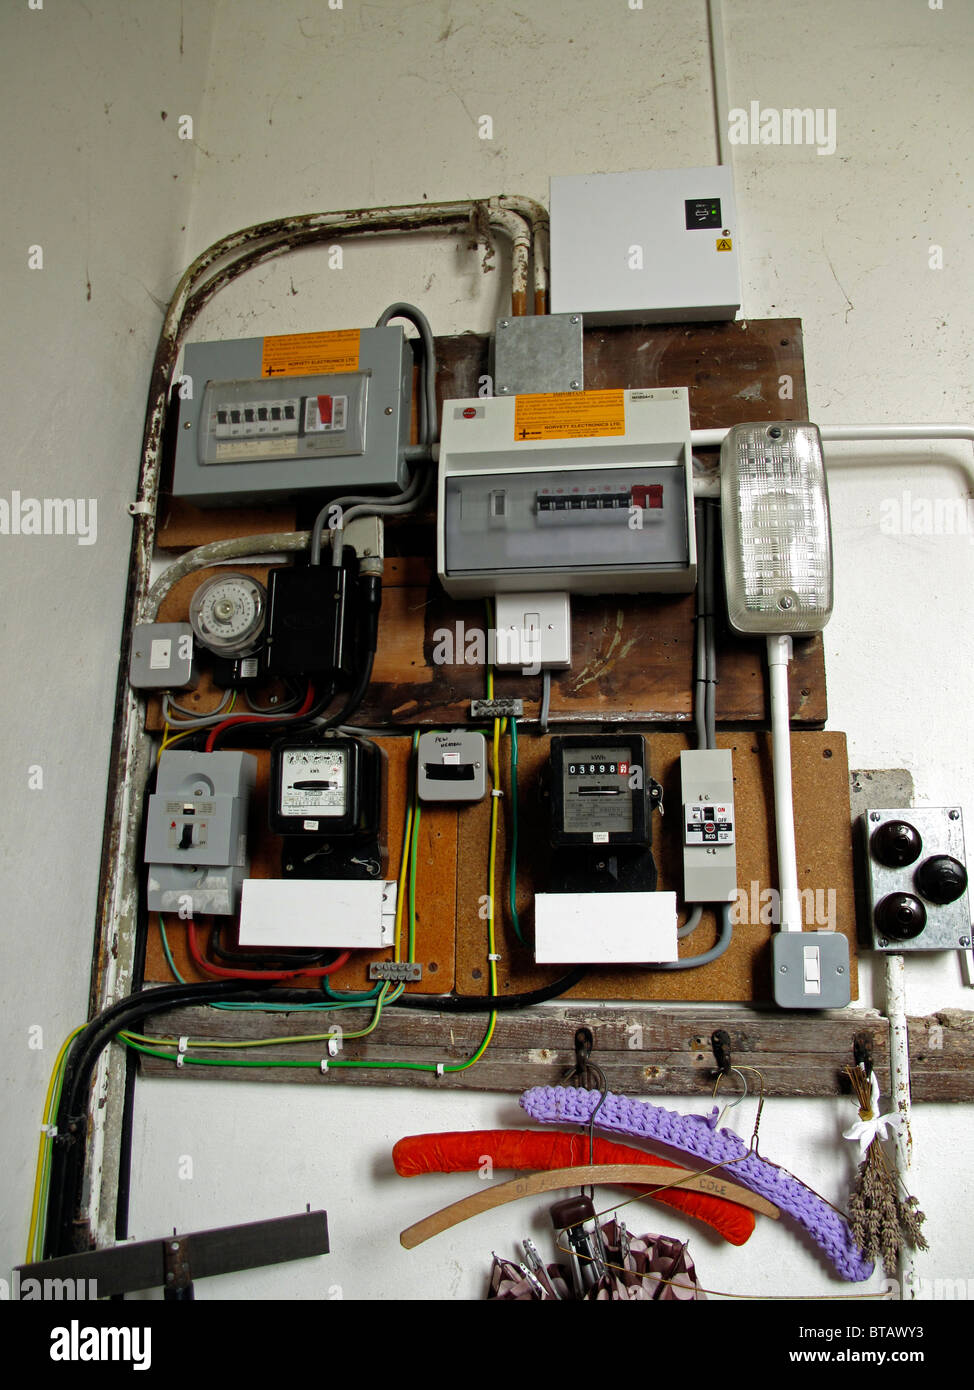 [SCHEMATICS_4JK]  Electrical supplies,switches, fuse boxes and meters Stock Photo - Alamy | Fuse Box Electrical Supplies |  | Alamy